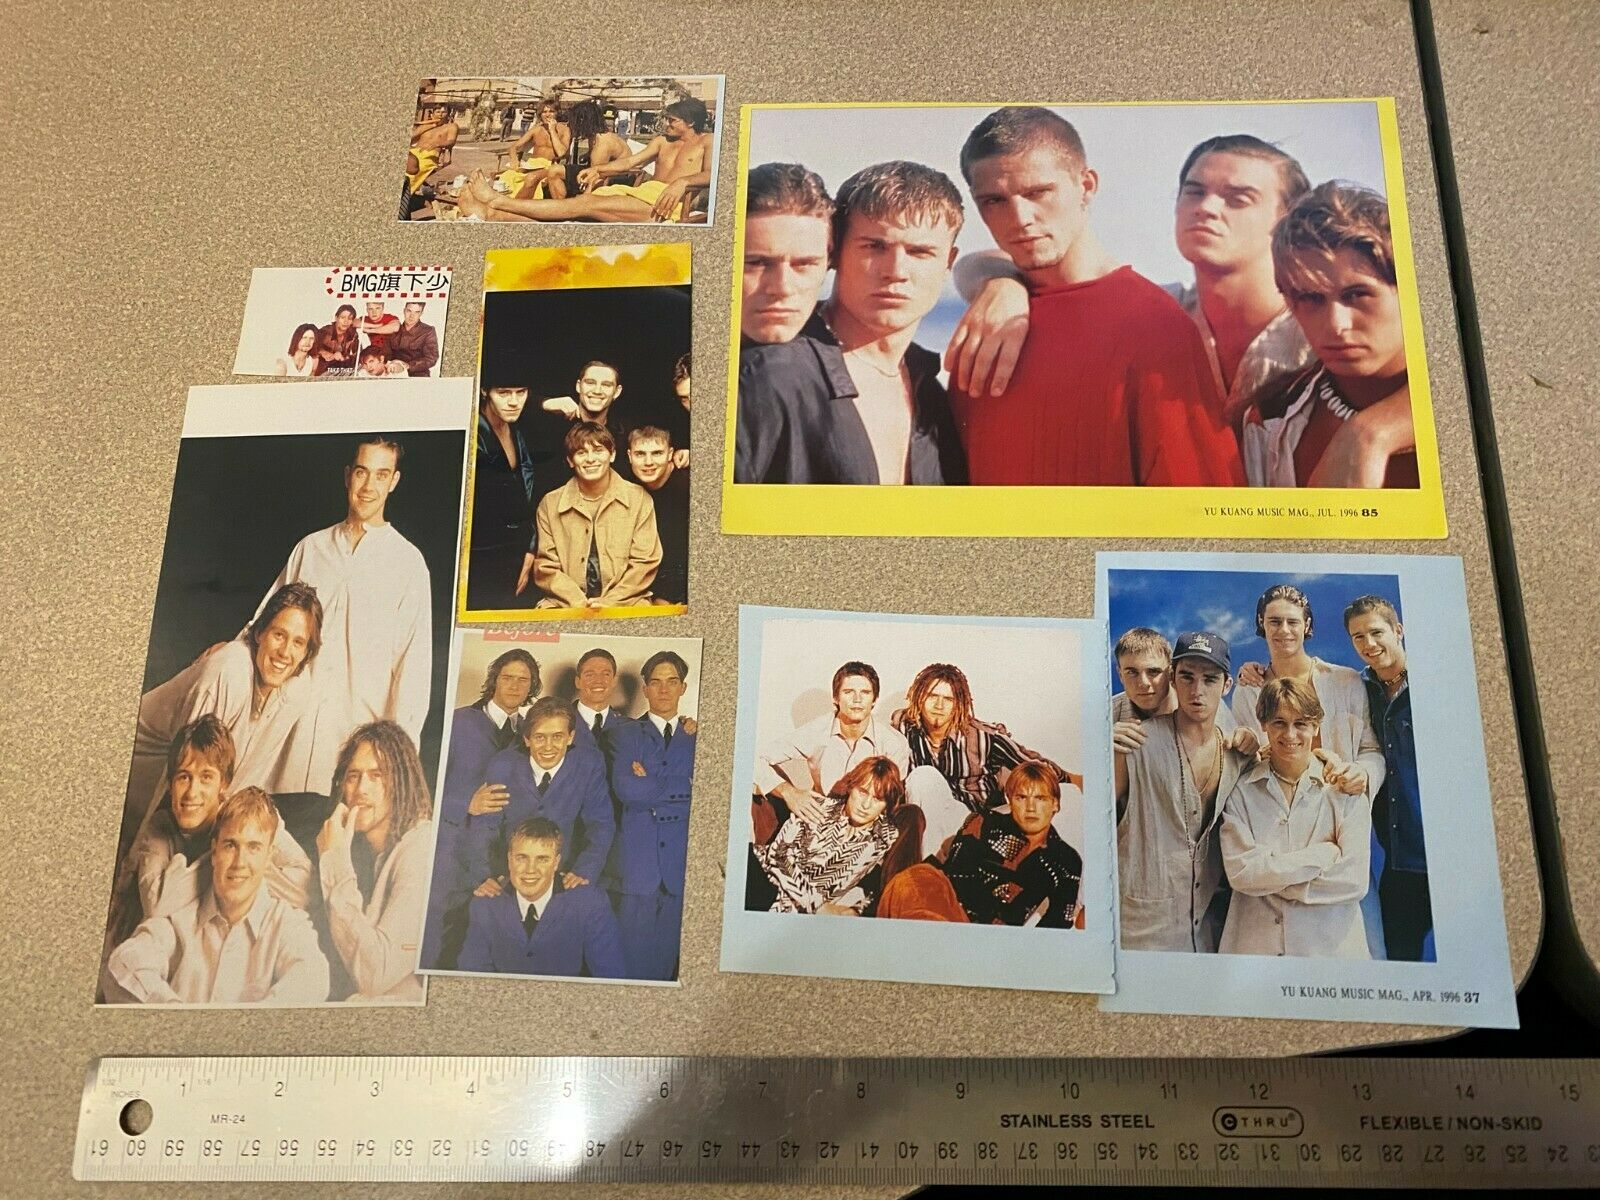 Take That pop Band 90s Magazine Clippings Cuttings Photos From Taiwan - $5.00